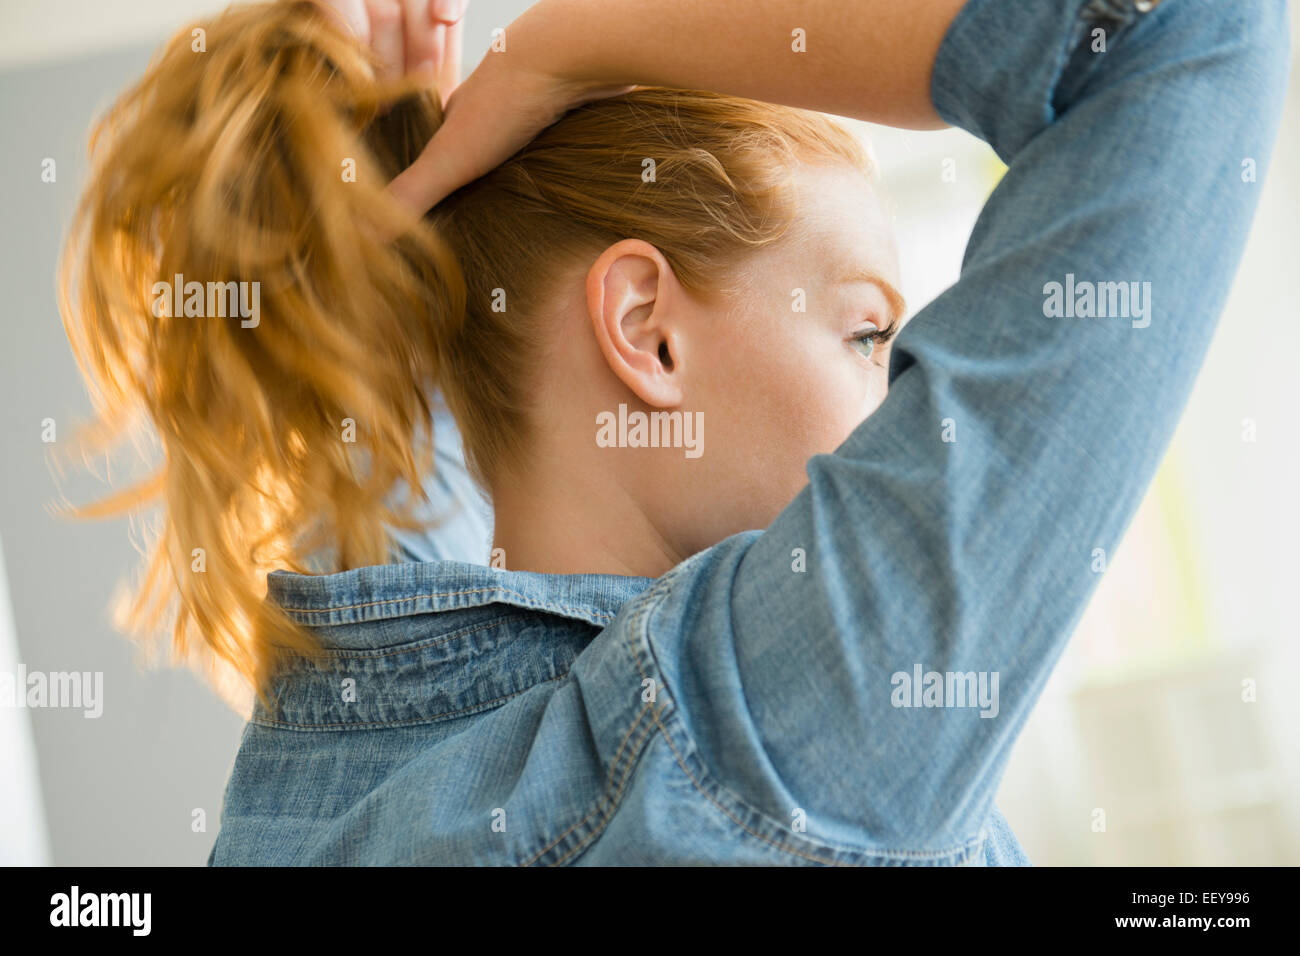 Young woman tying hair - Stock Image